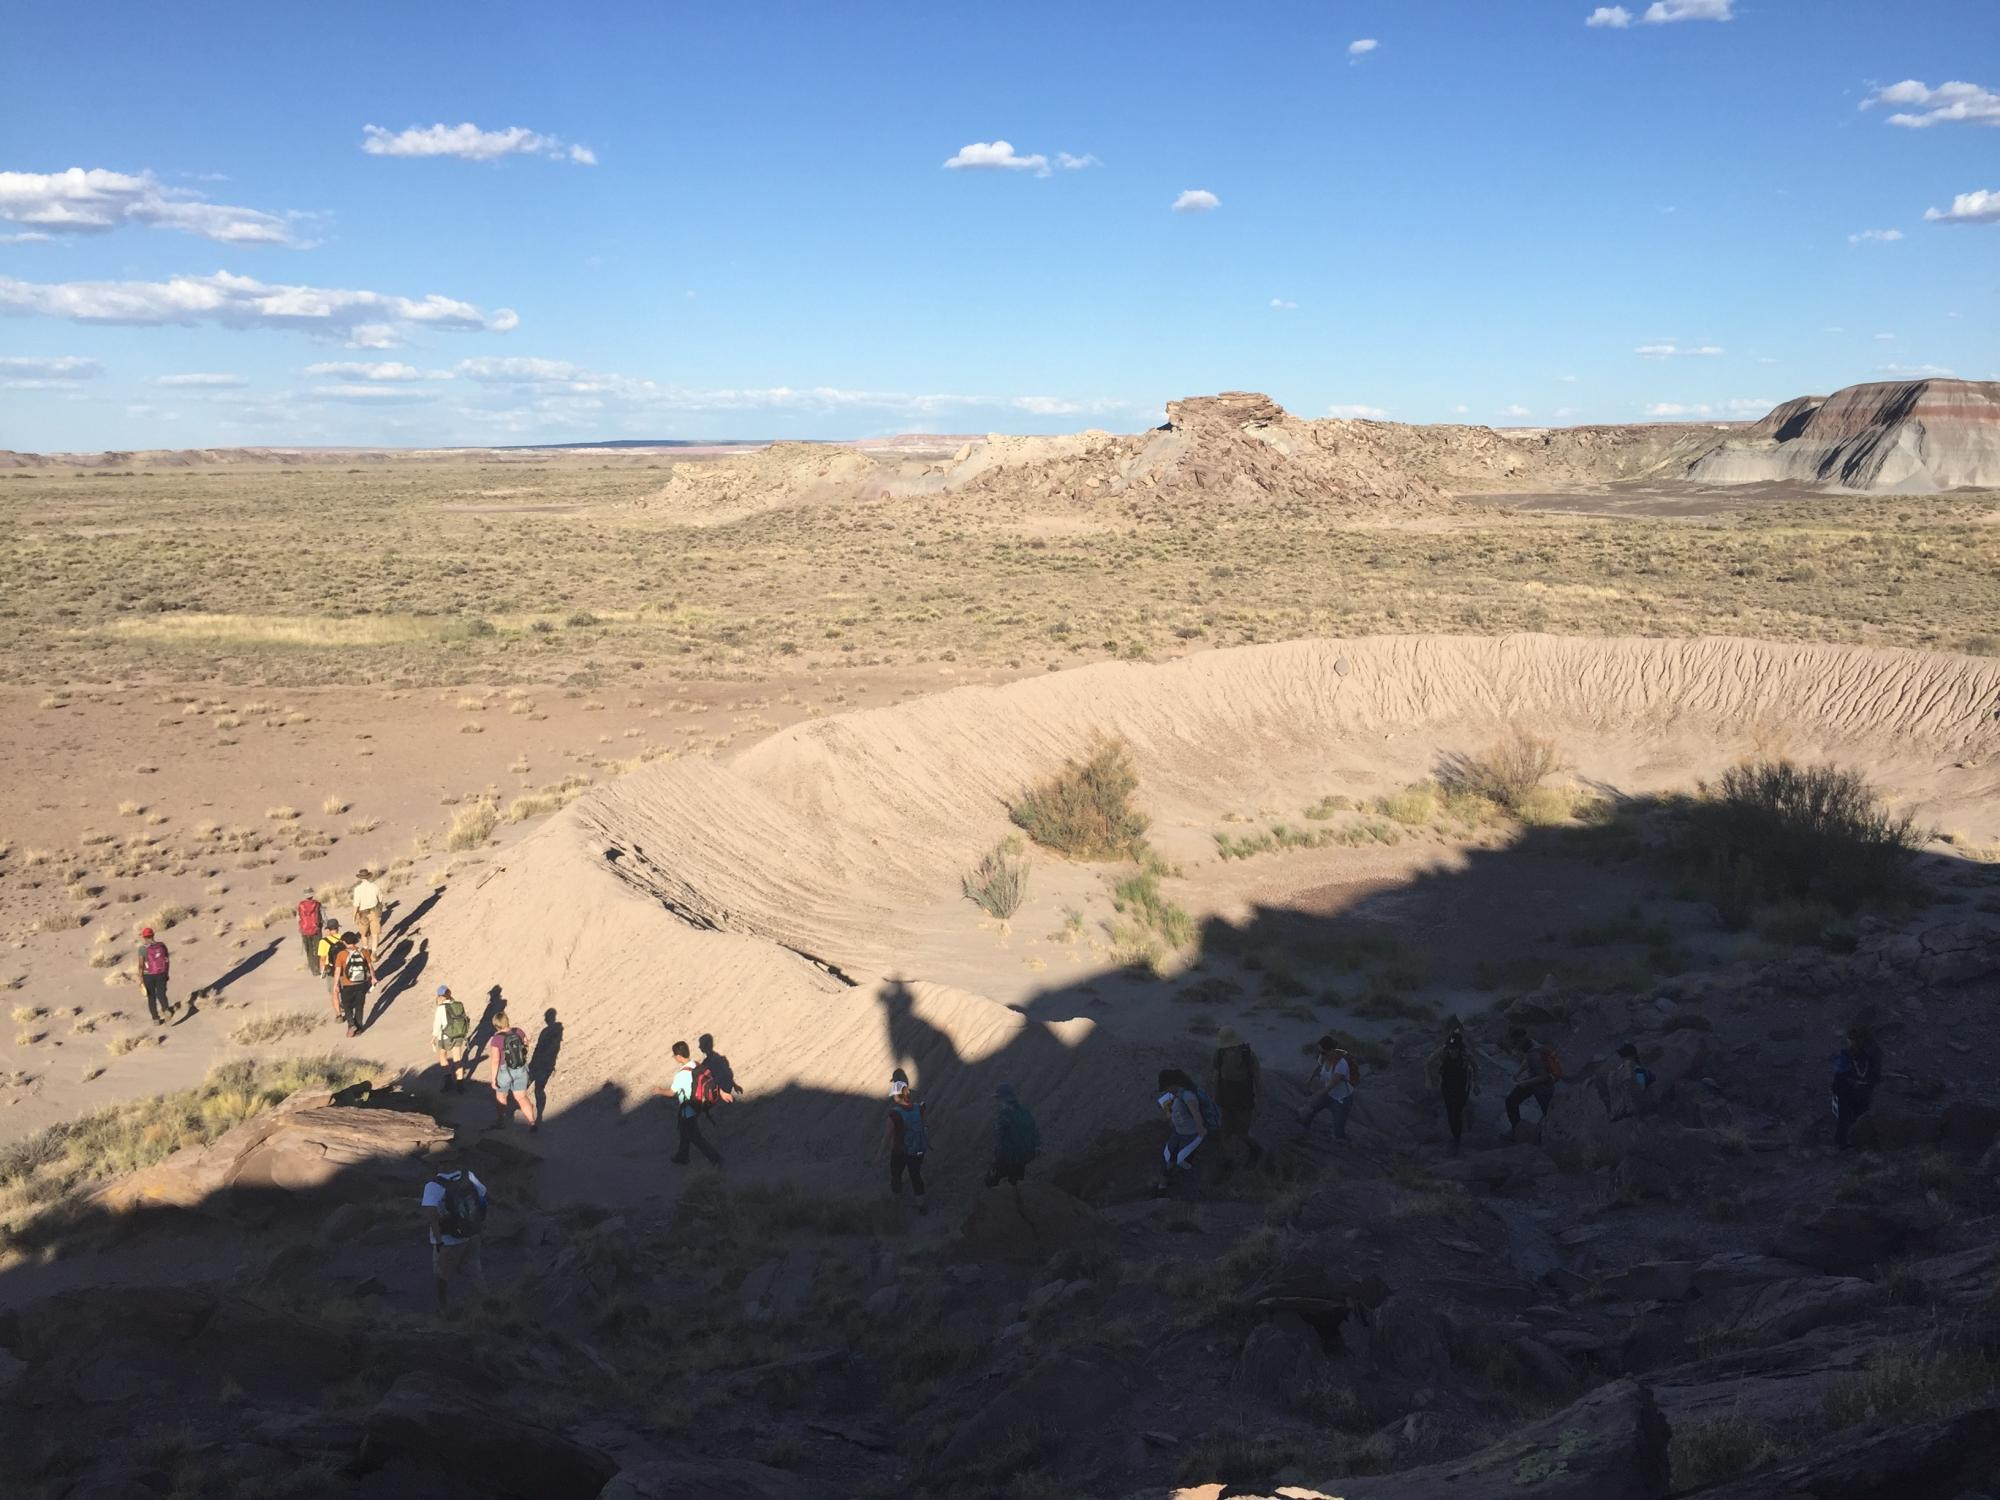 Graduate students explored a crater in the Canyon de Chelly National Monument in northeastern Arizona last fall.